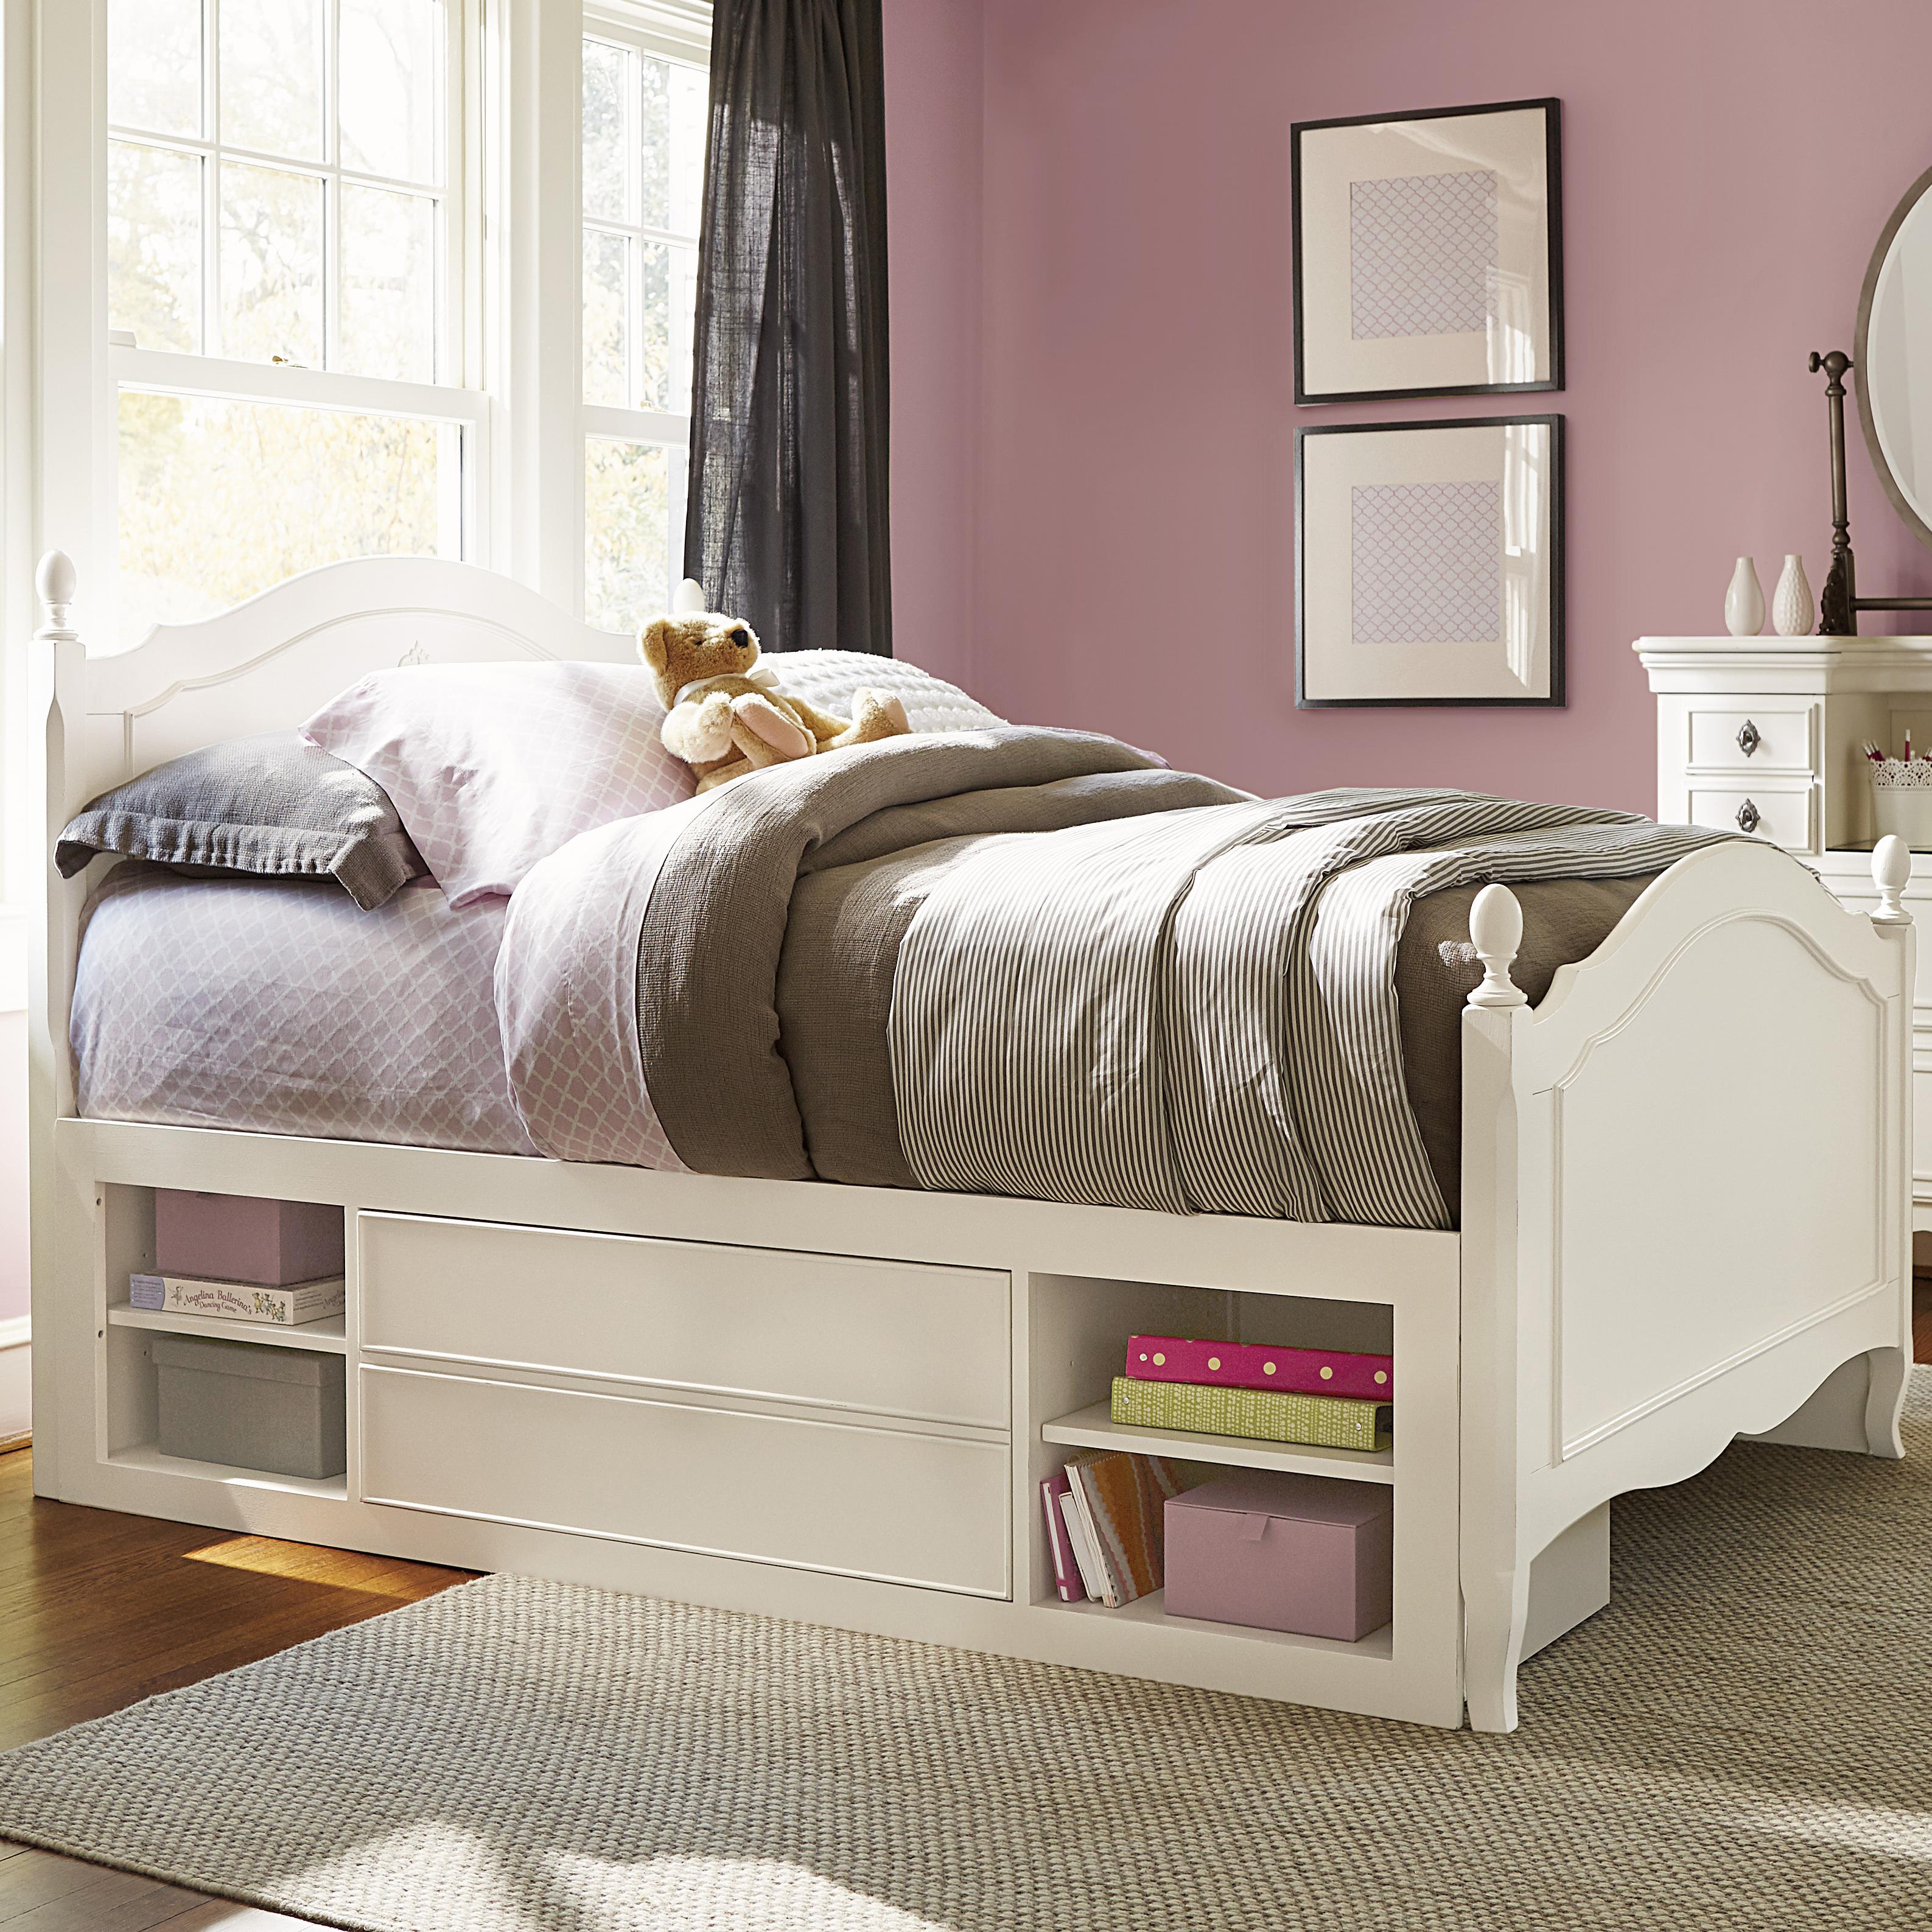 Smartstuff Genevieve Full Reading Bed with Underbed Storage - Item Number: 434A043+61